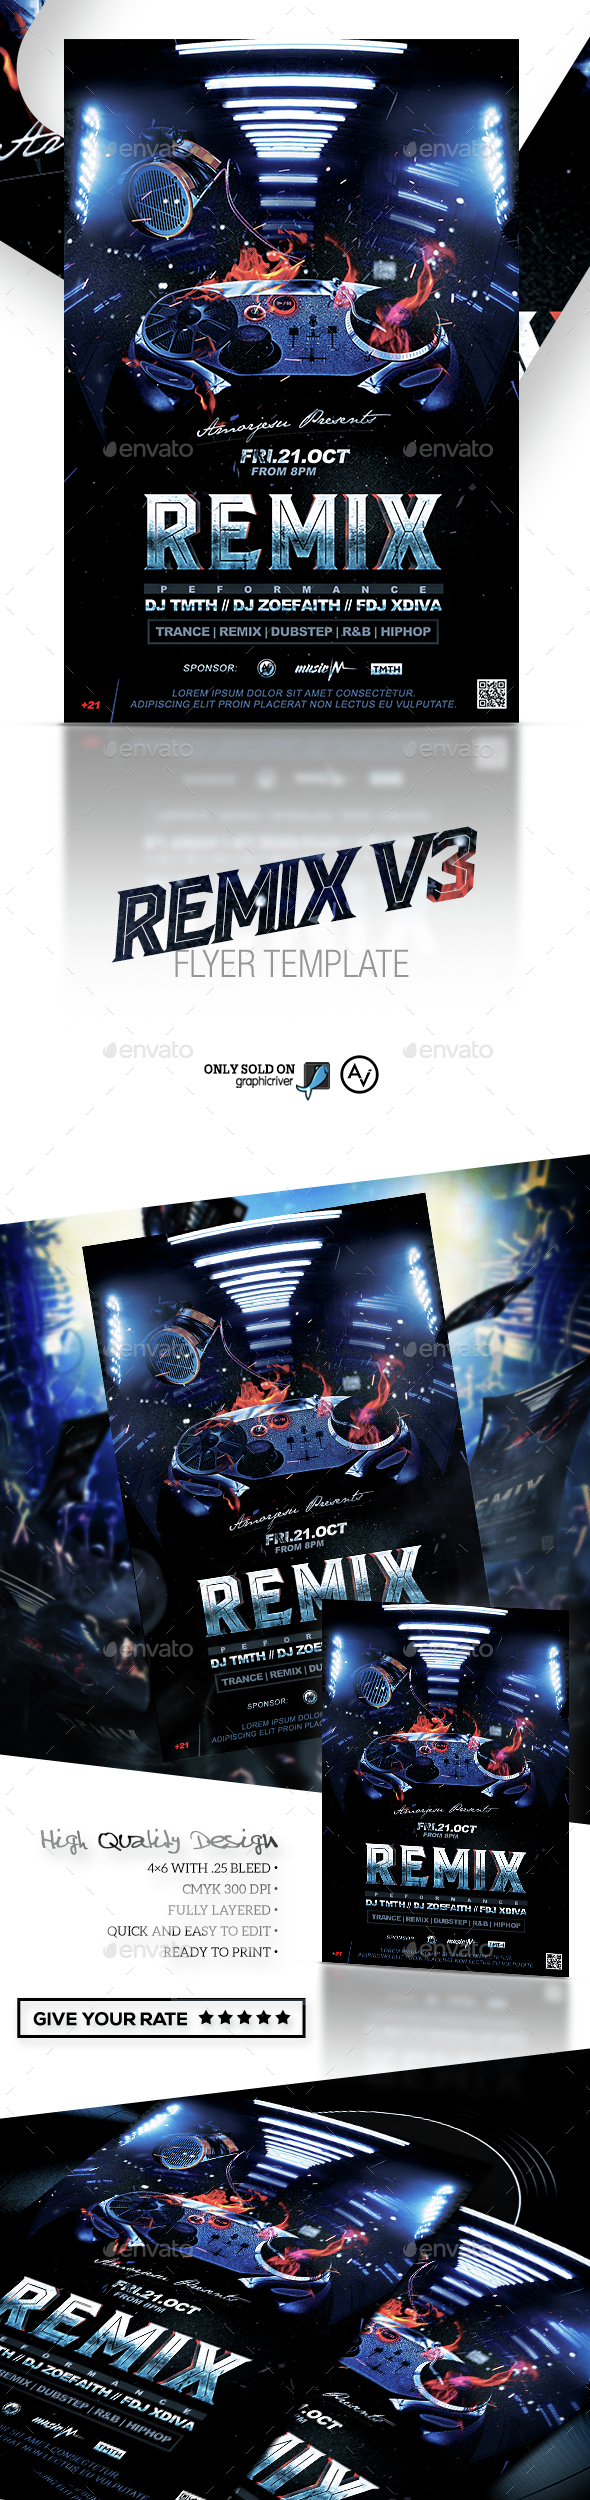 Remix Flyer Template V4 - Clubs & Parties Events